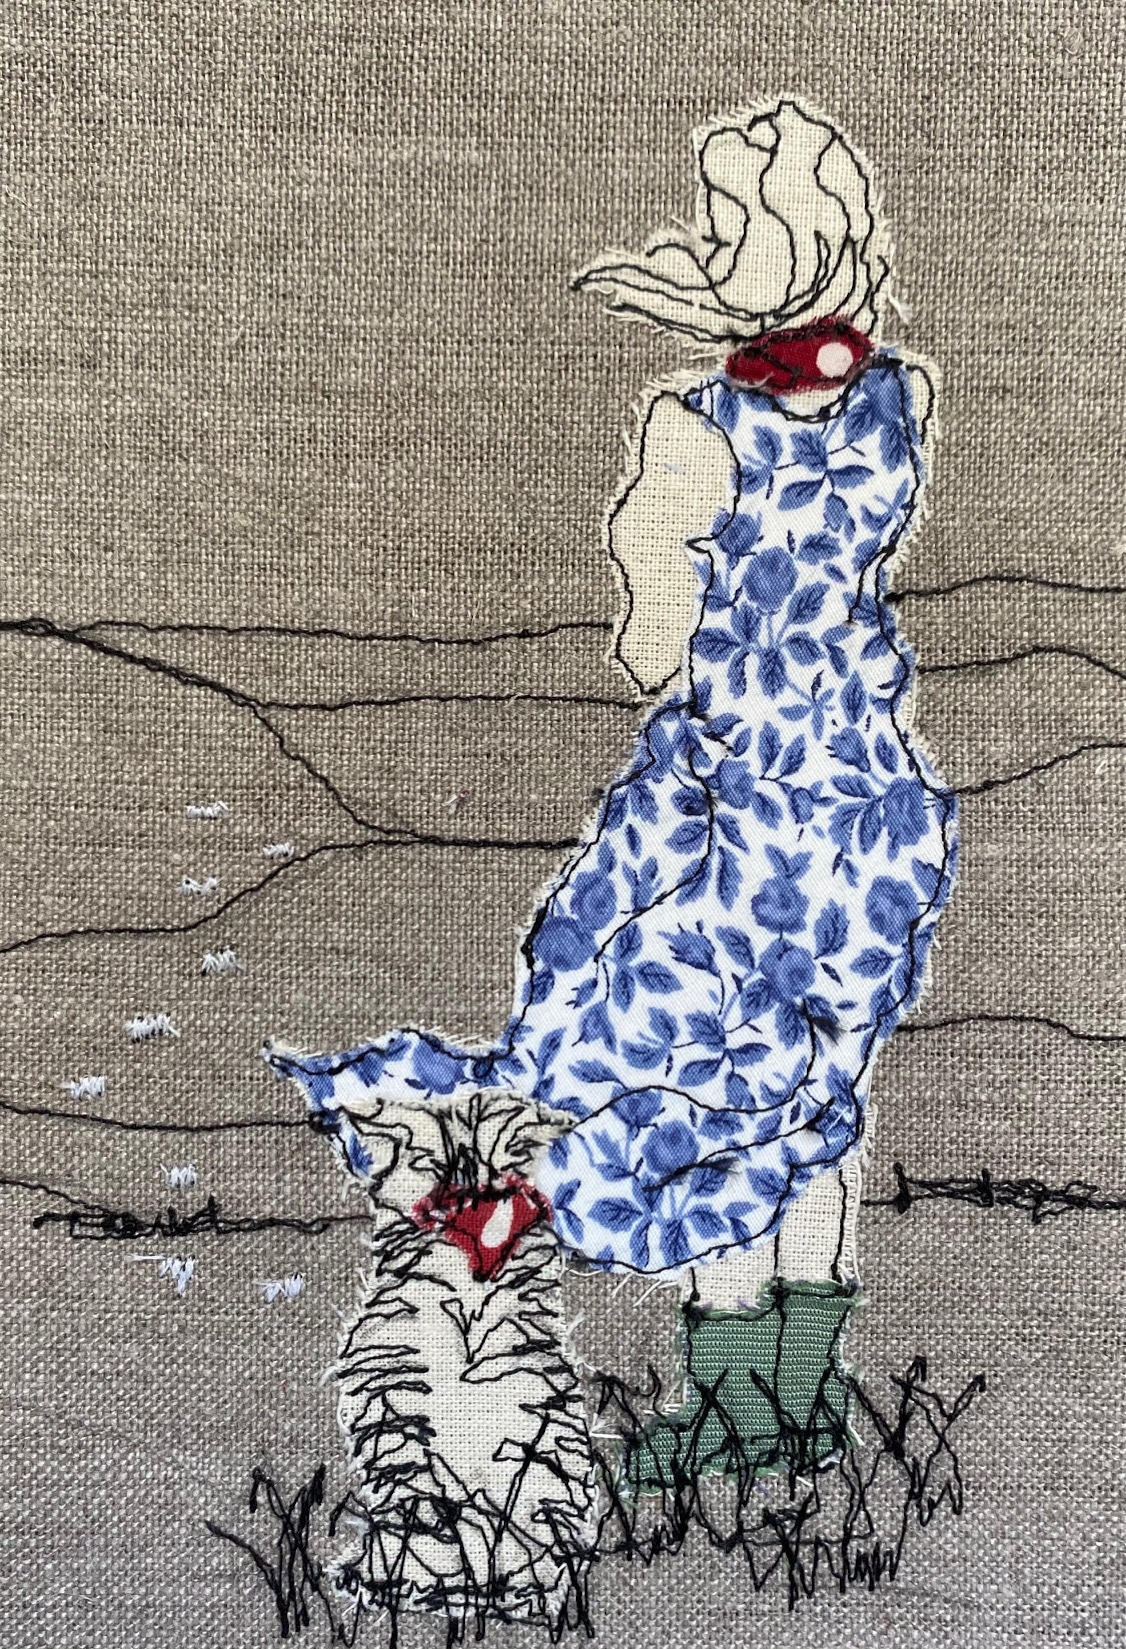 Shepherdess Embroidered Textile Artwork By  Juliet D Collins (Fitzroy)